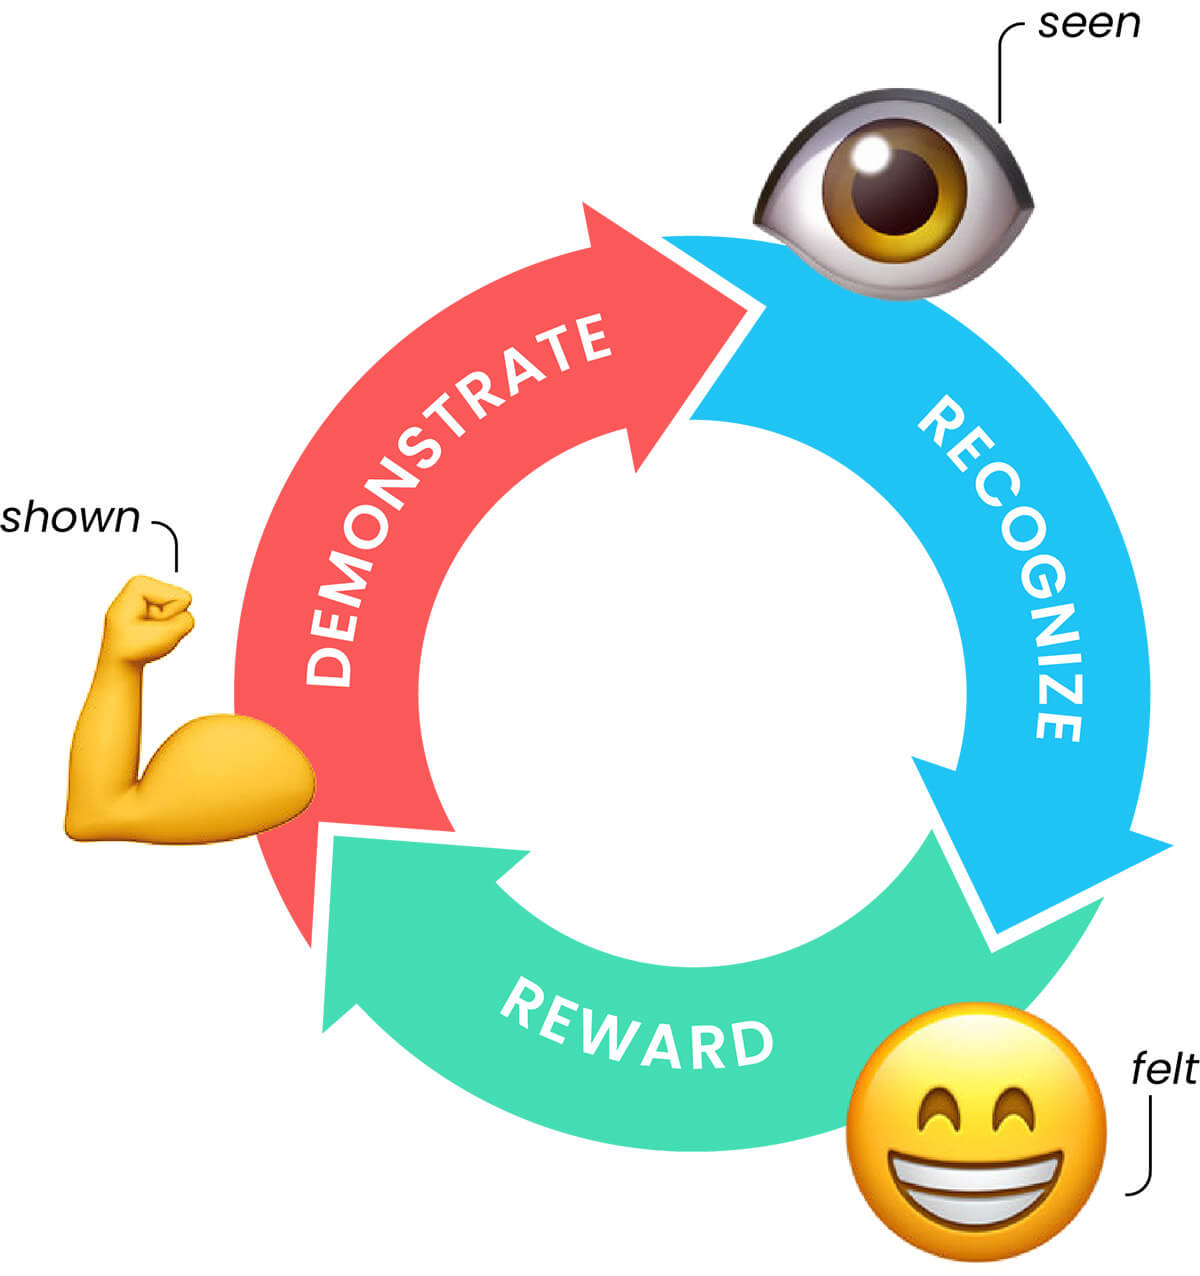 The Value Cycle drives behavior and builds culture.